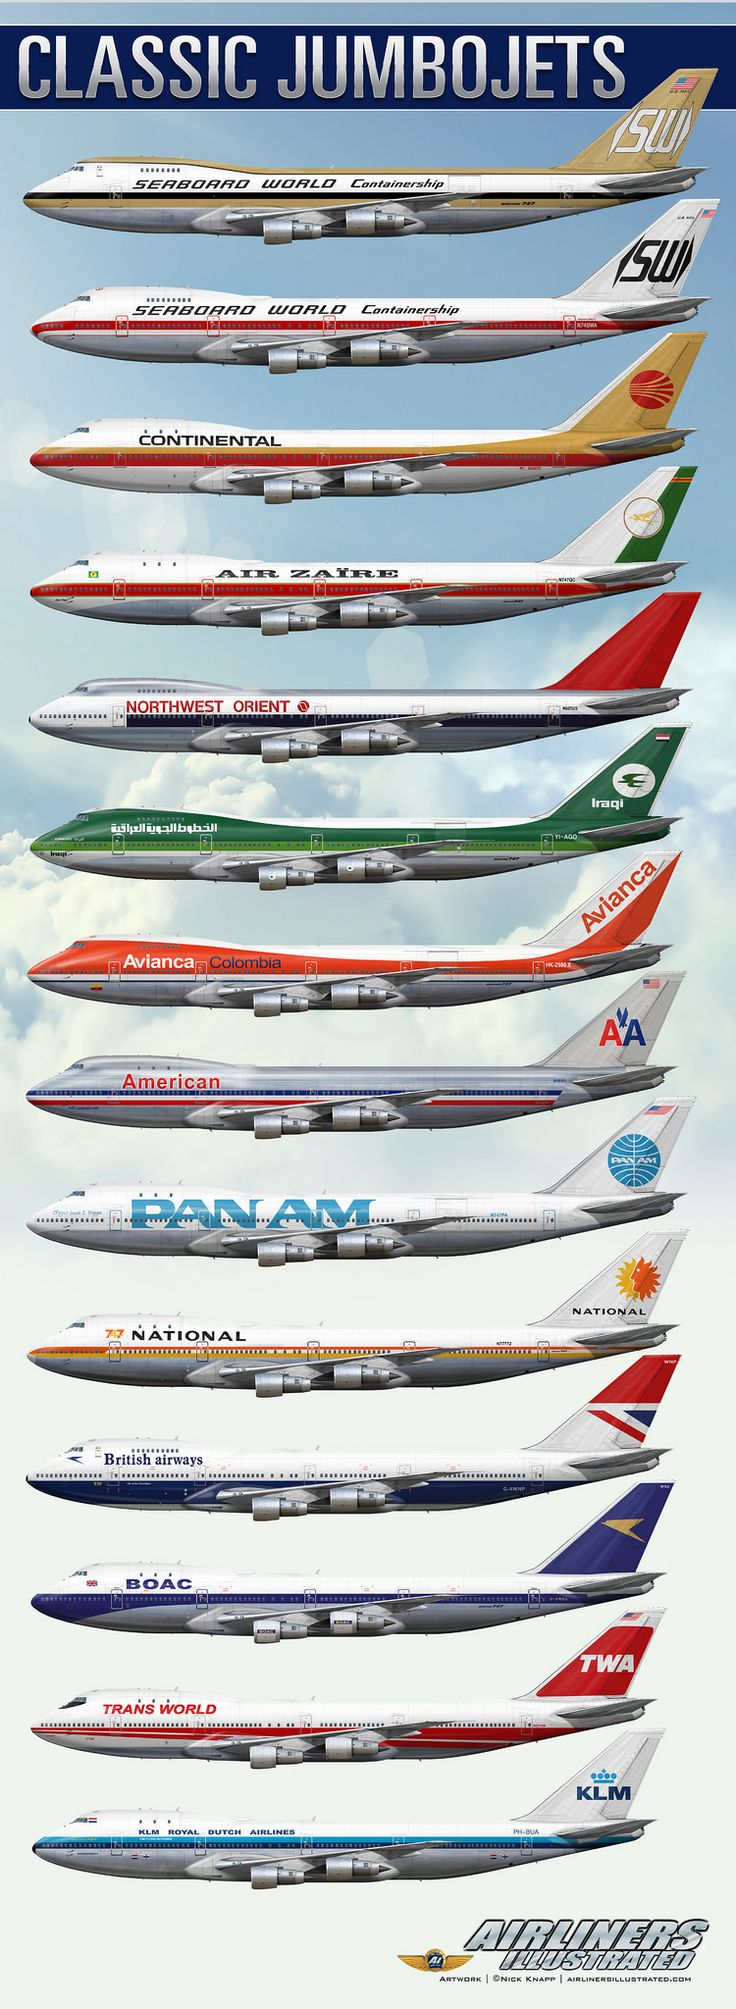 https://flic.kr/p/Nk1hFX | CLASSIC BOEING 747 JUMBOJETS AIRLINER ART | Airliners Illustrated® by Nick Knapp©. www.AirlinersIllustrated.com